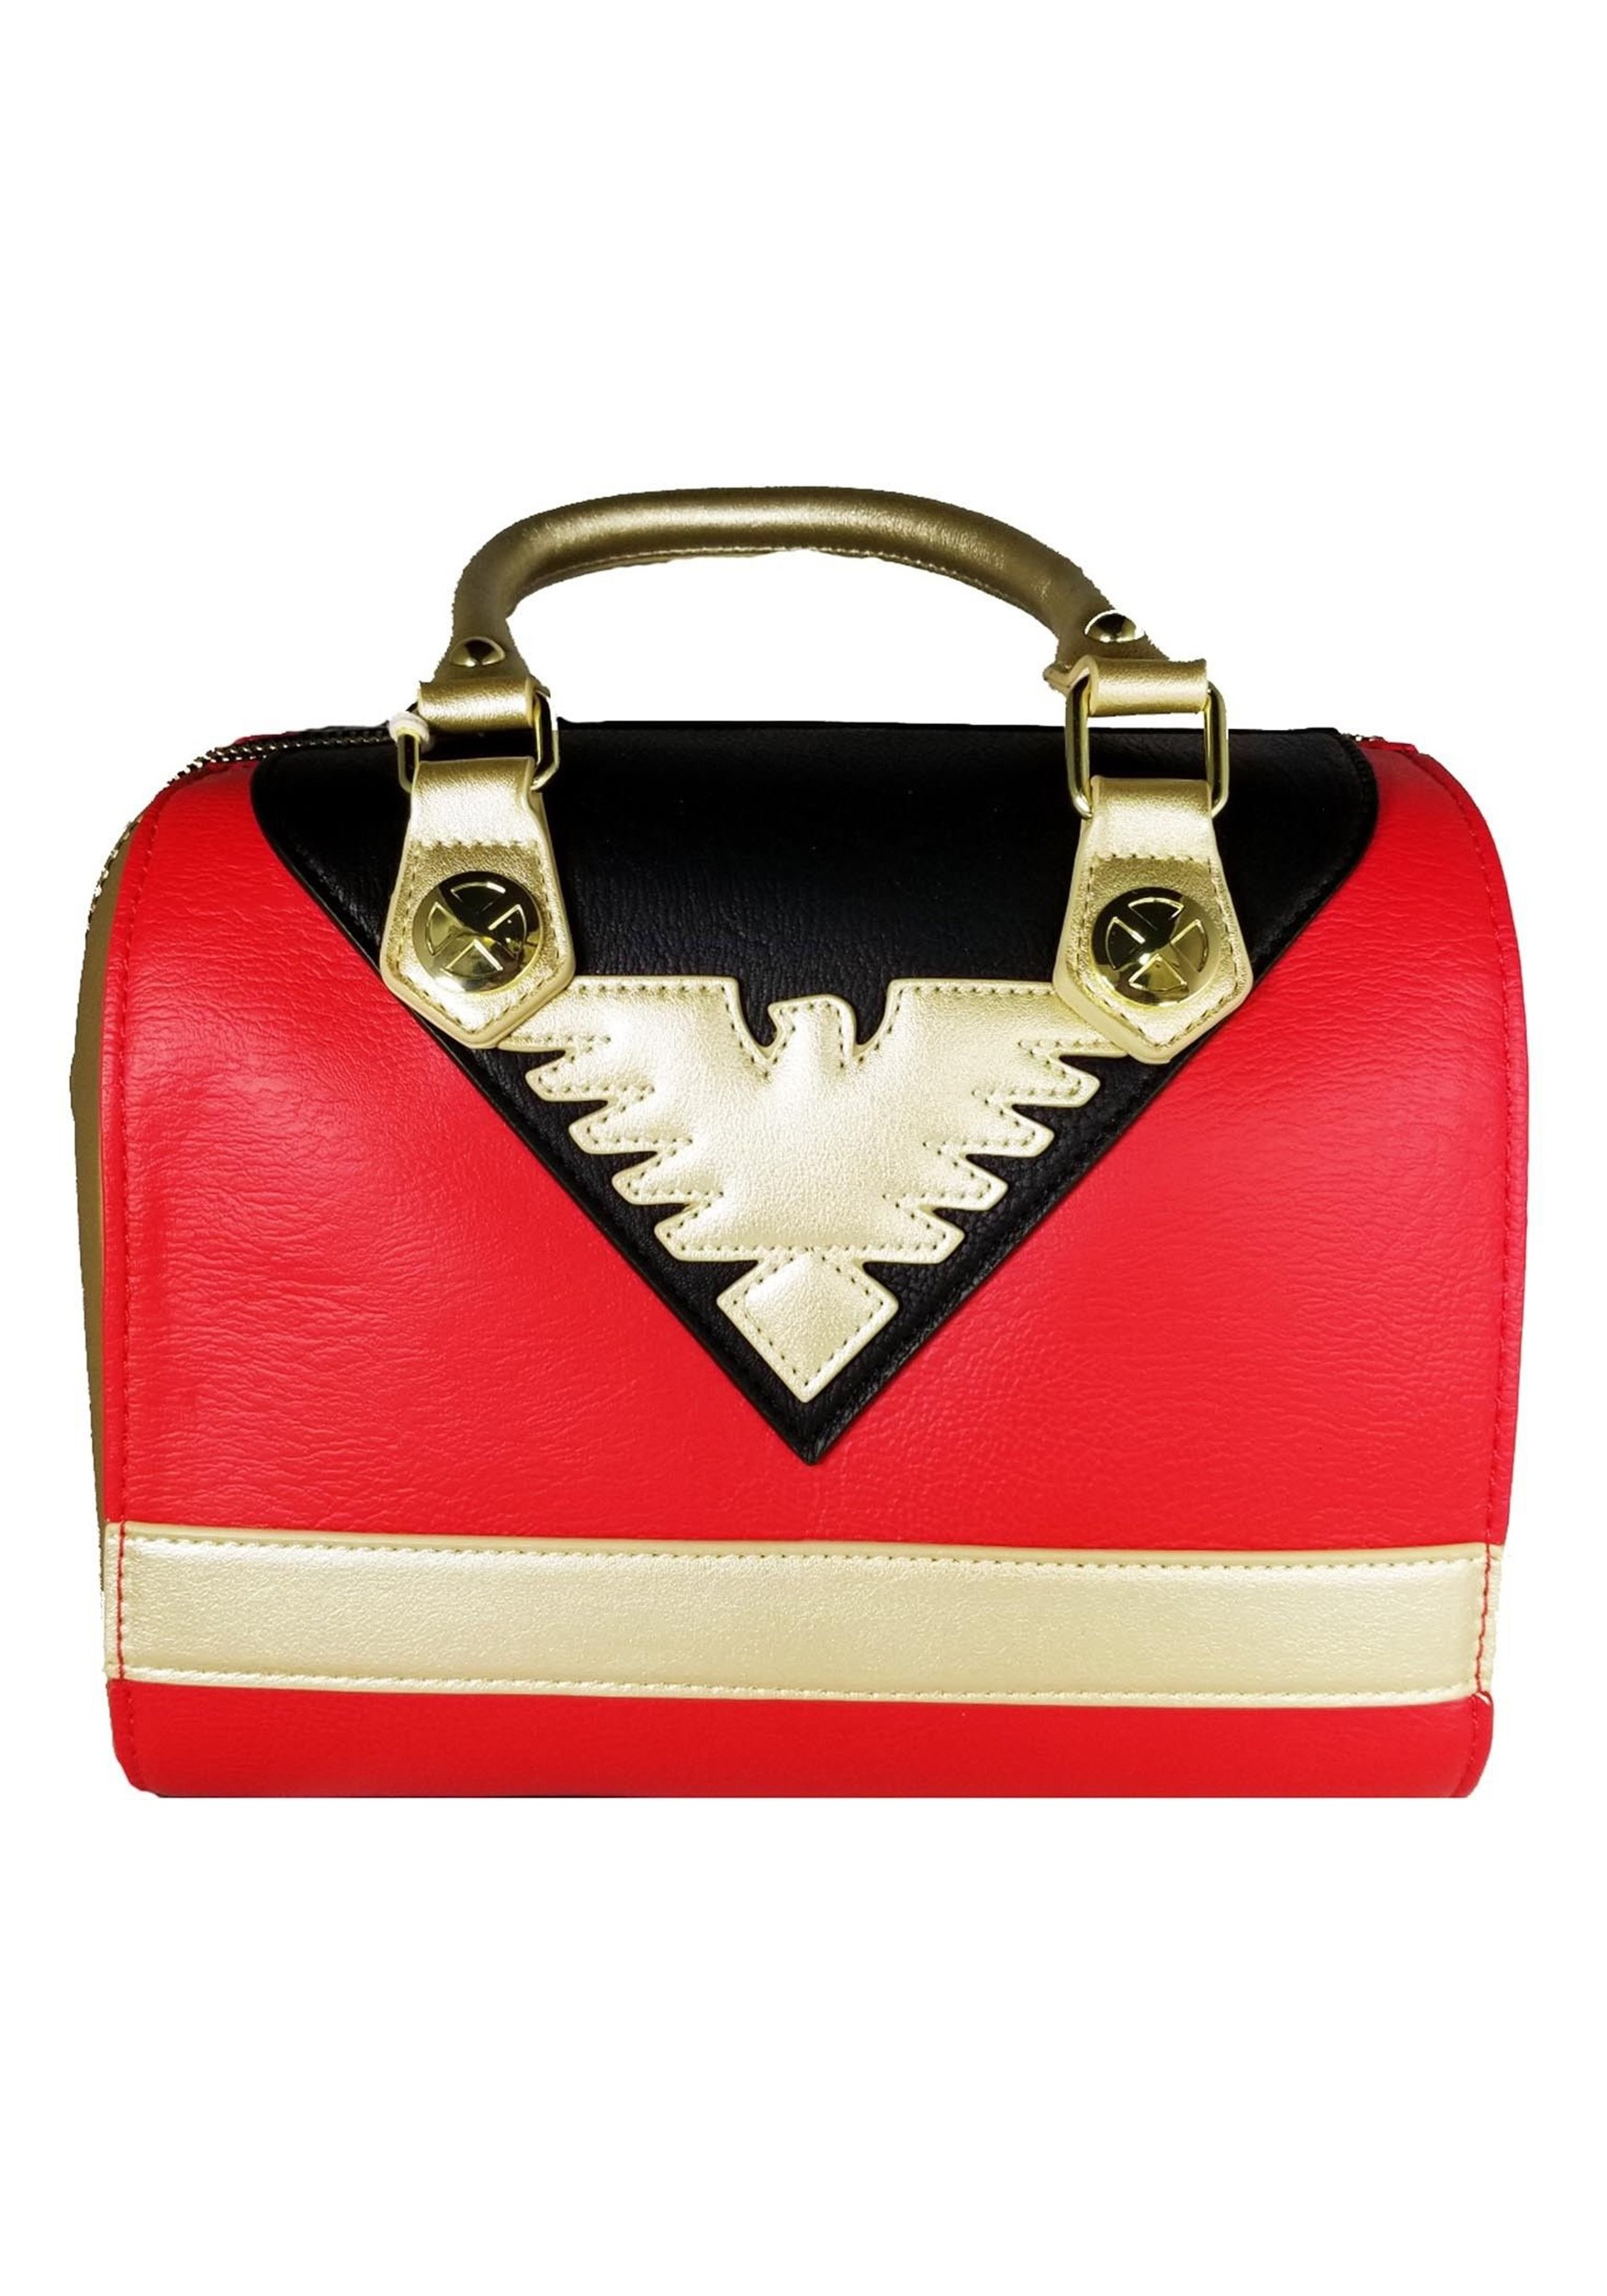 X-Men Red Phoenix Faux Leather Handbag by Loungefly